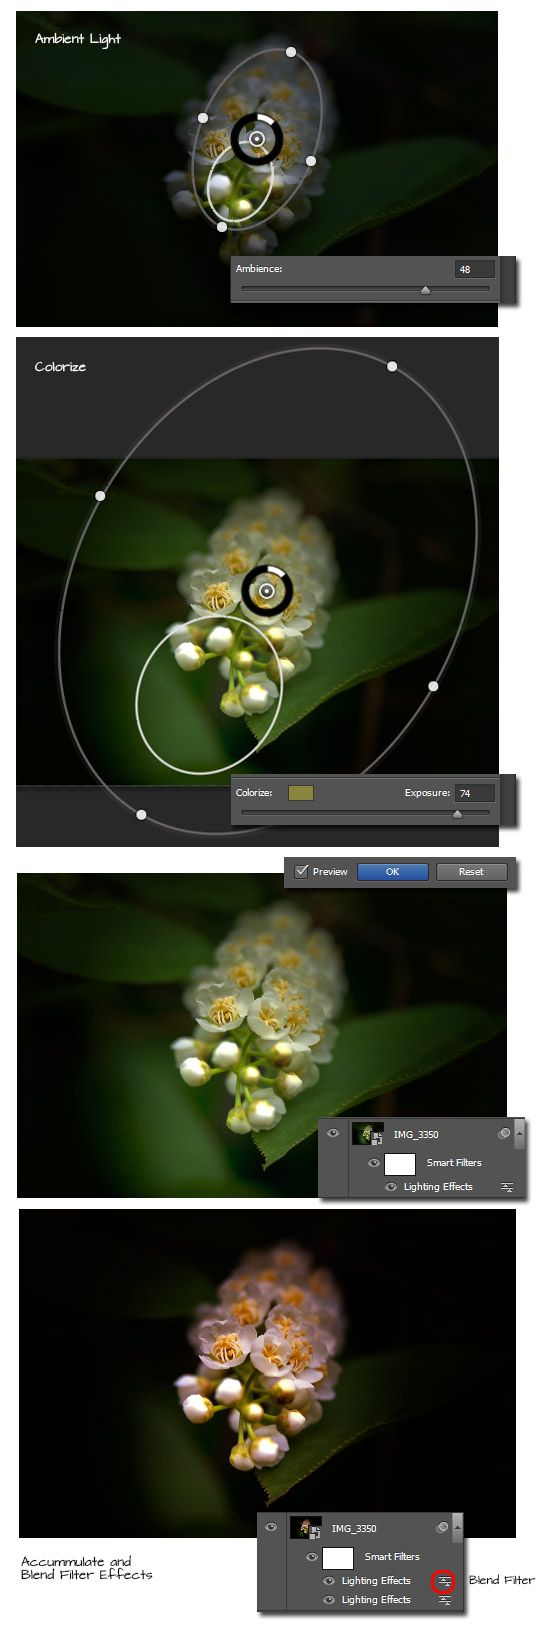 Improved Lighting Effects in CS6